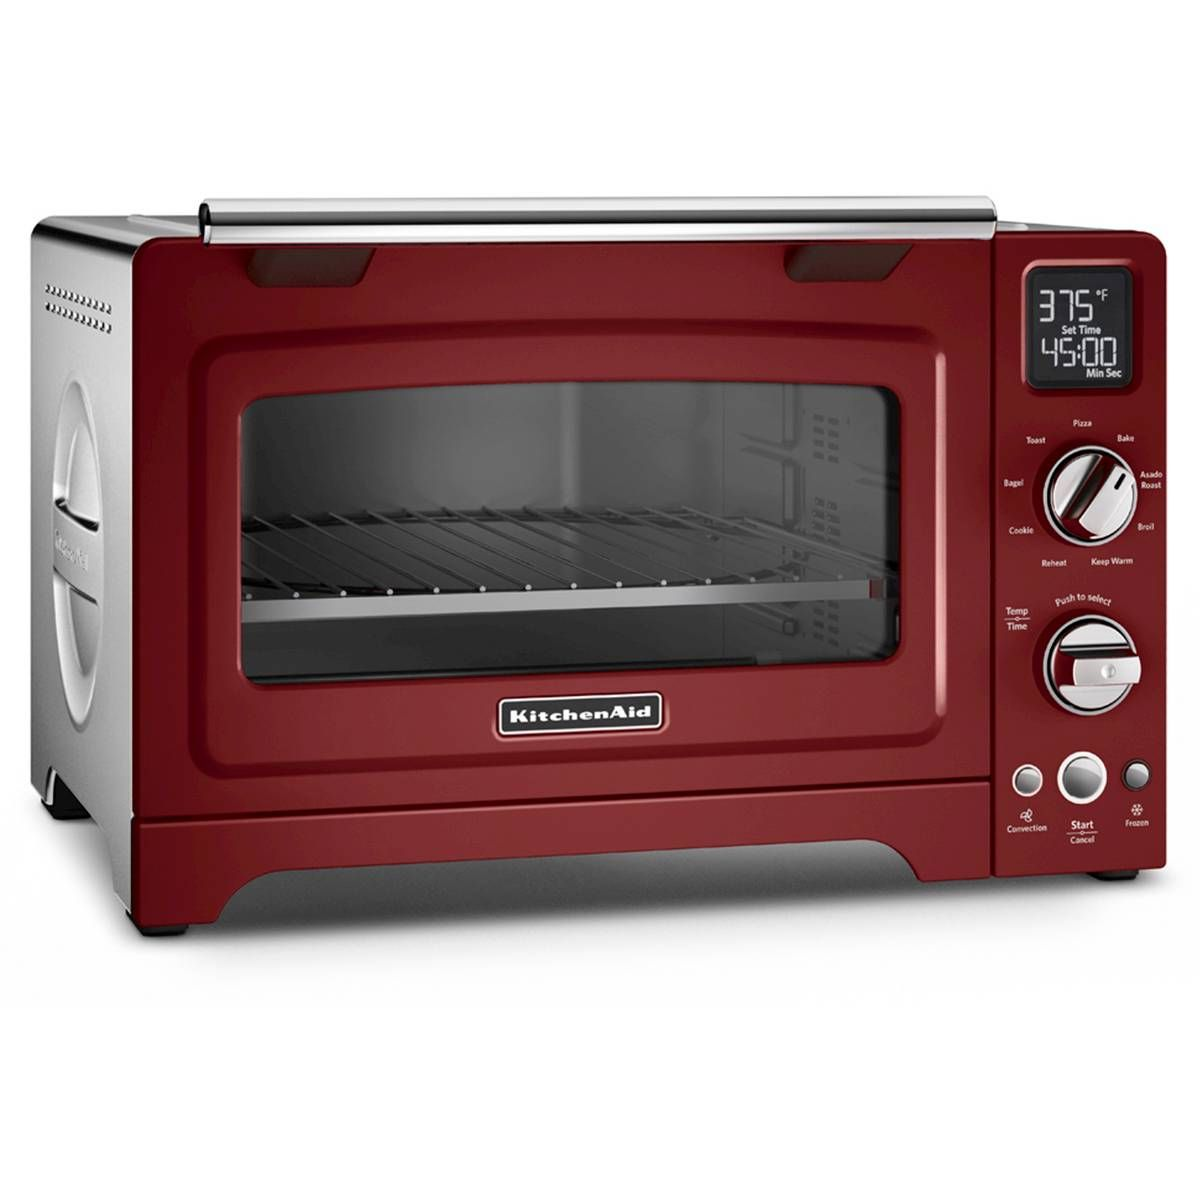 Find Product Information Ratings And Reviews For Kitchenaid Digital Convection Oven Online On Target Com Countertop Oven Countertop Convection Oven Toaster